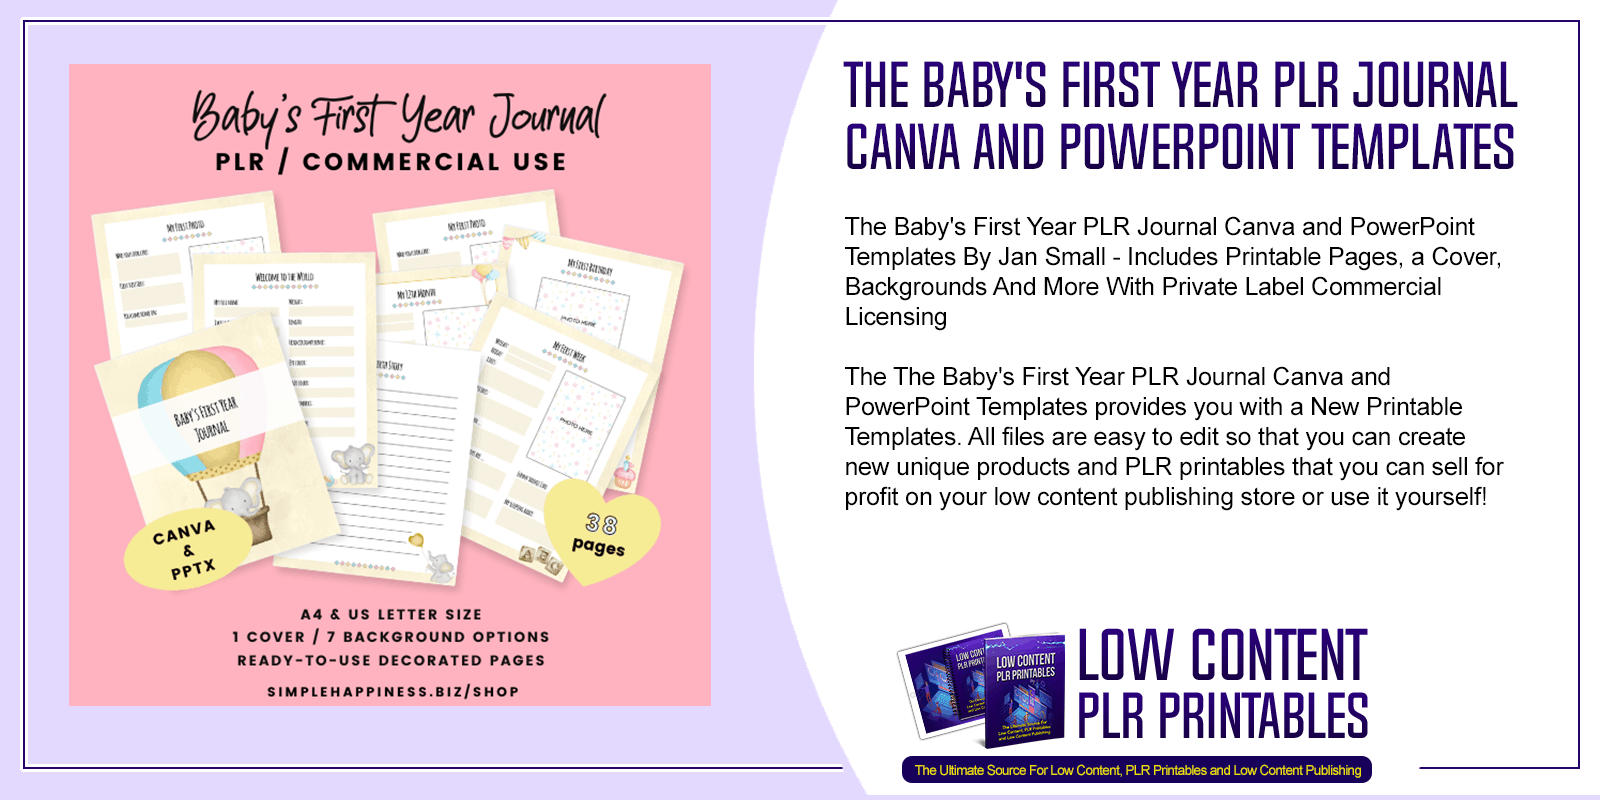 The Babys First Year PLR Journal Canva and PowerPoint Templates